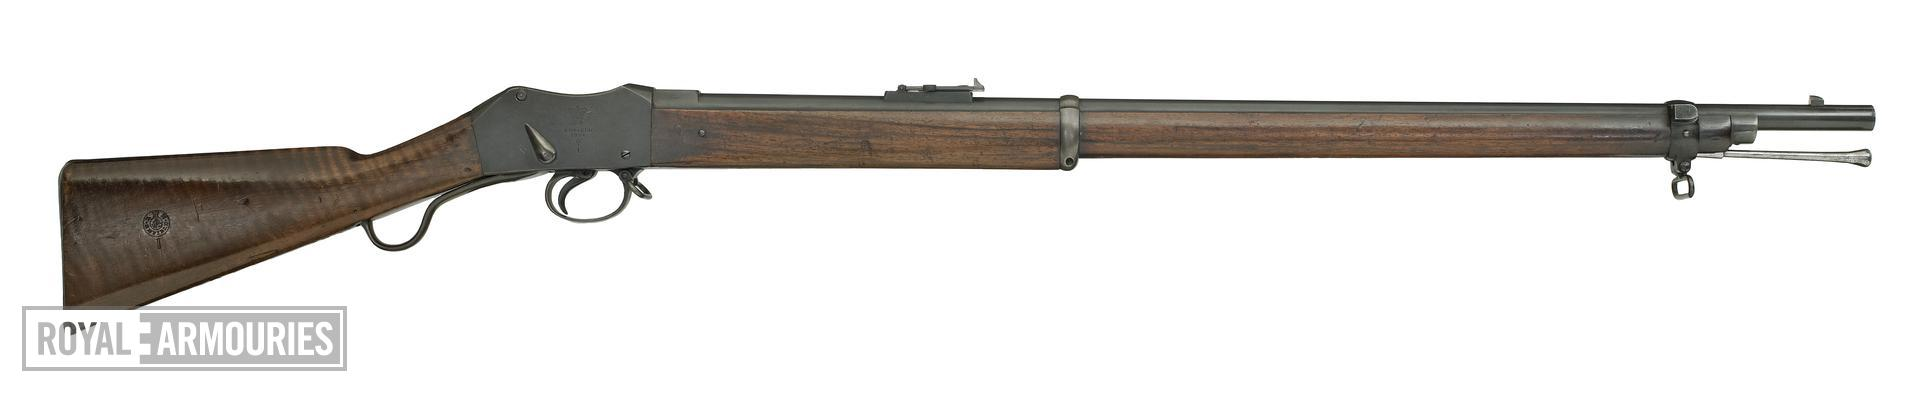 Centrefire breech-loading rifle - Martini-Henry Mk.I Made at Enfield RSAF